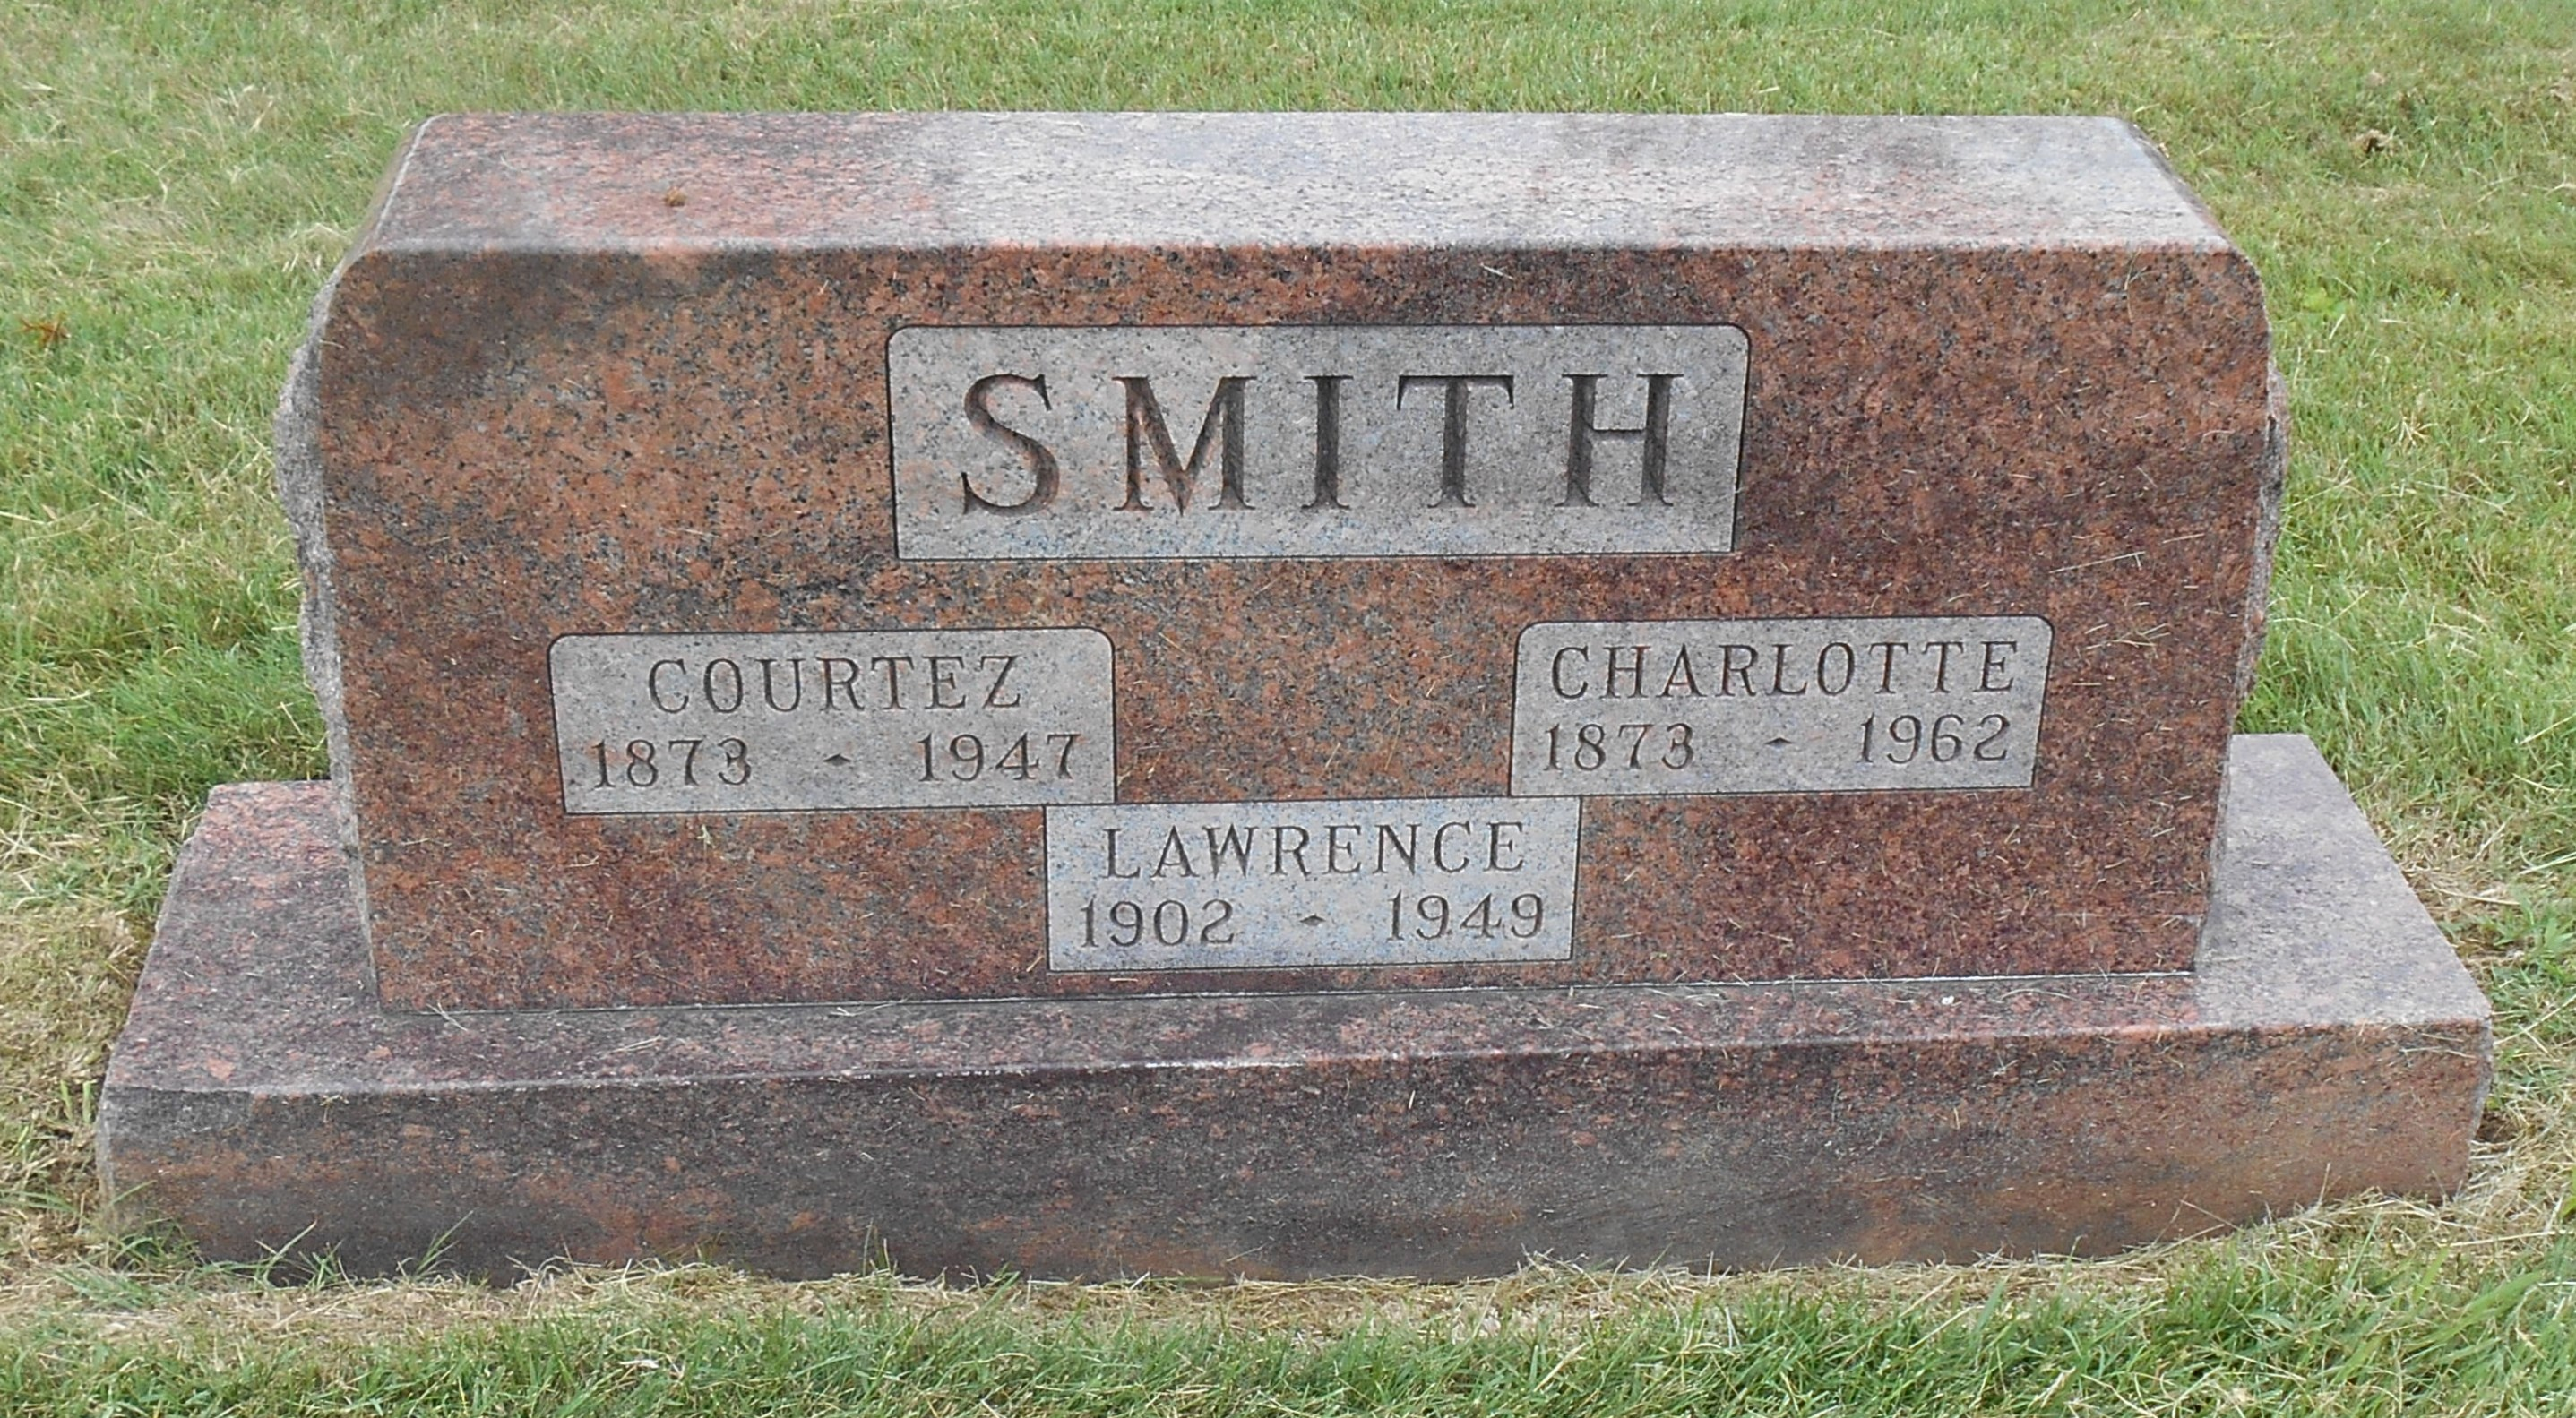 Courtez A Smith